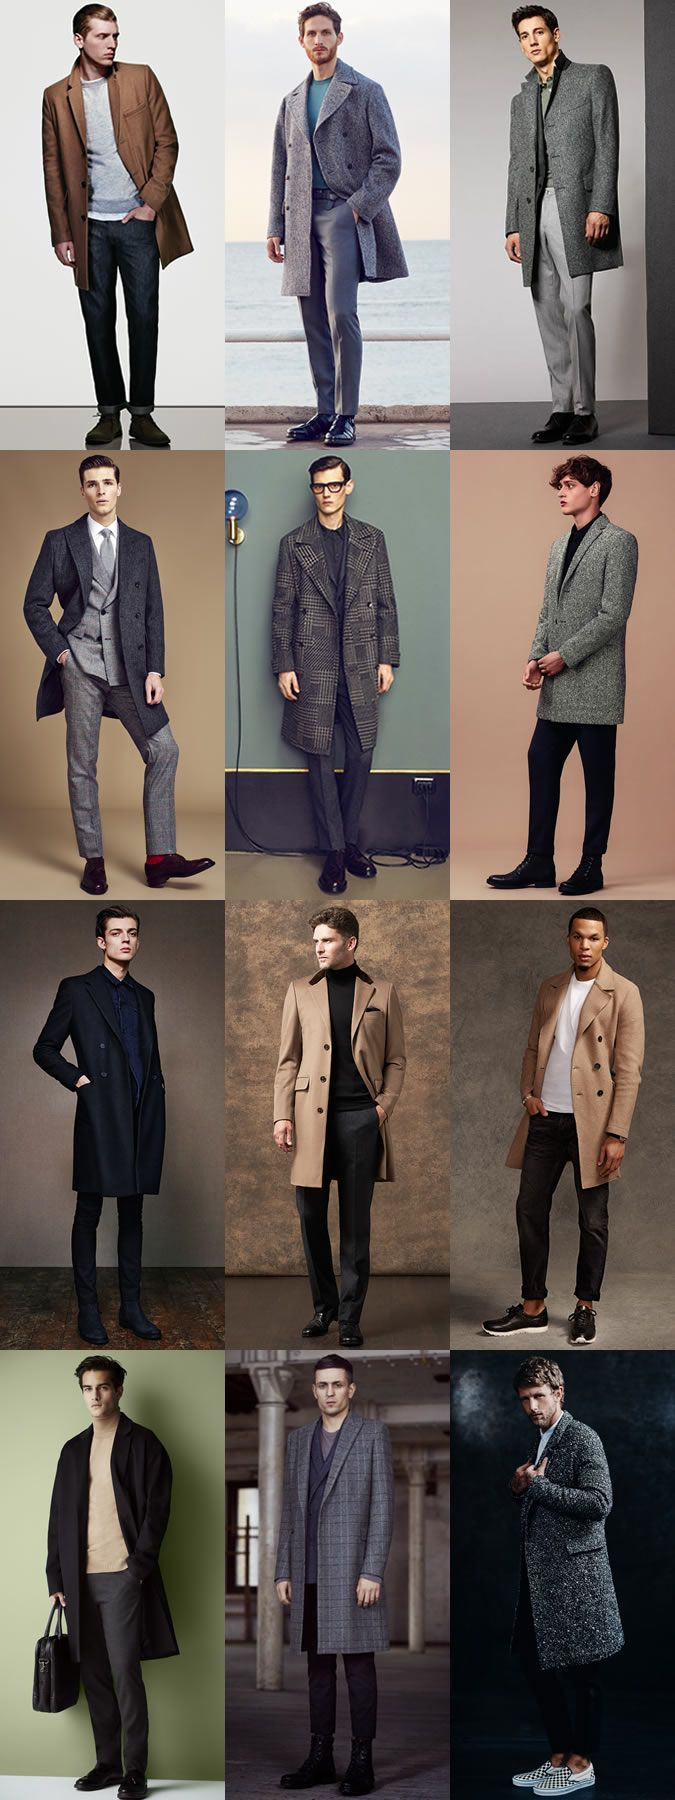 Men's Overcoats Outfit Inspiration Lookbook